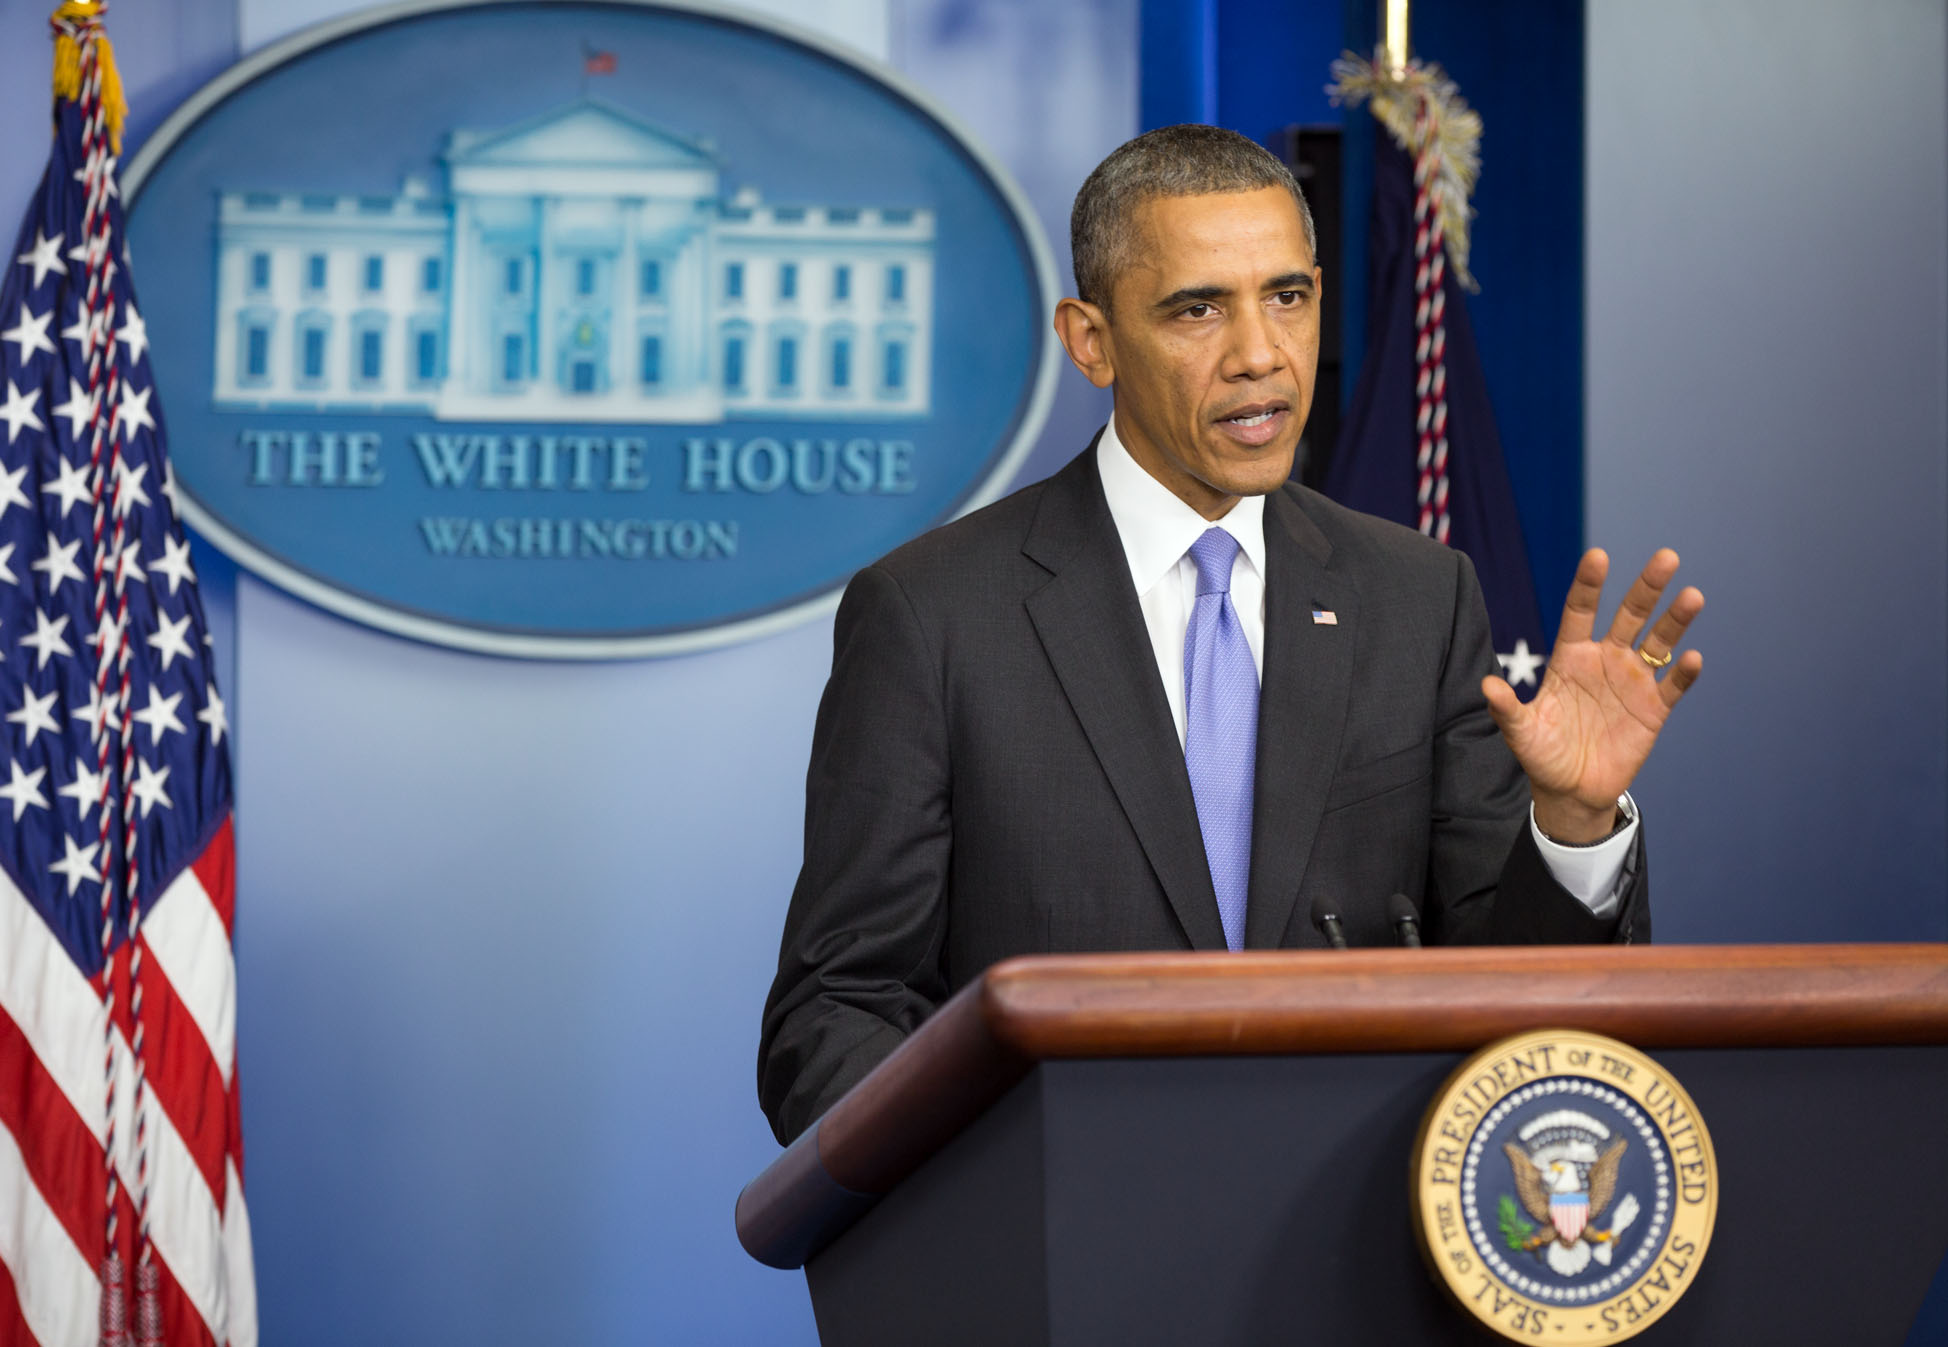 President Barack Obama makes remarks in the Press Briefing Room at the White House, Oct. 16, 2013.